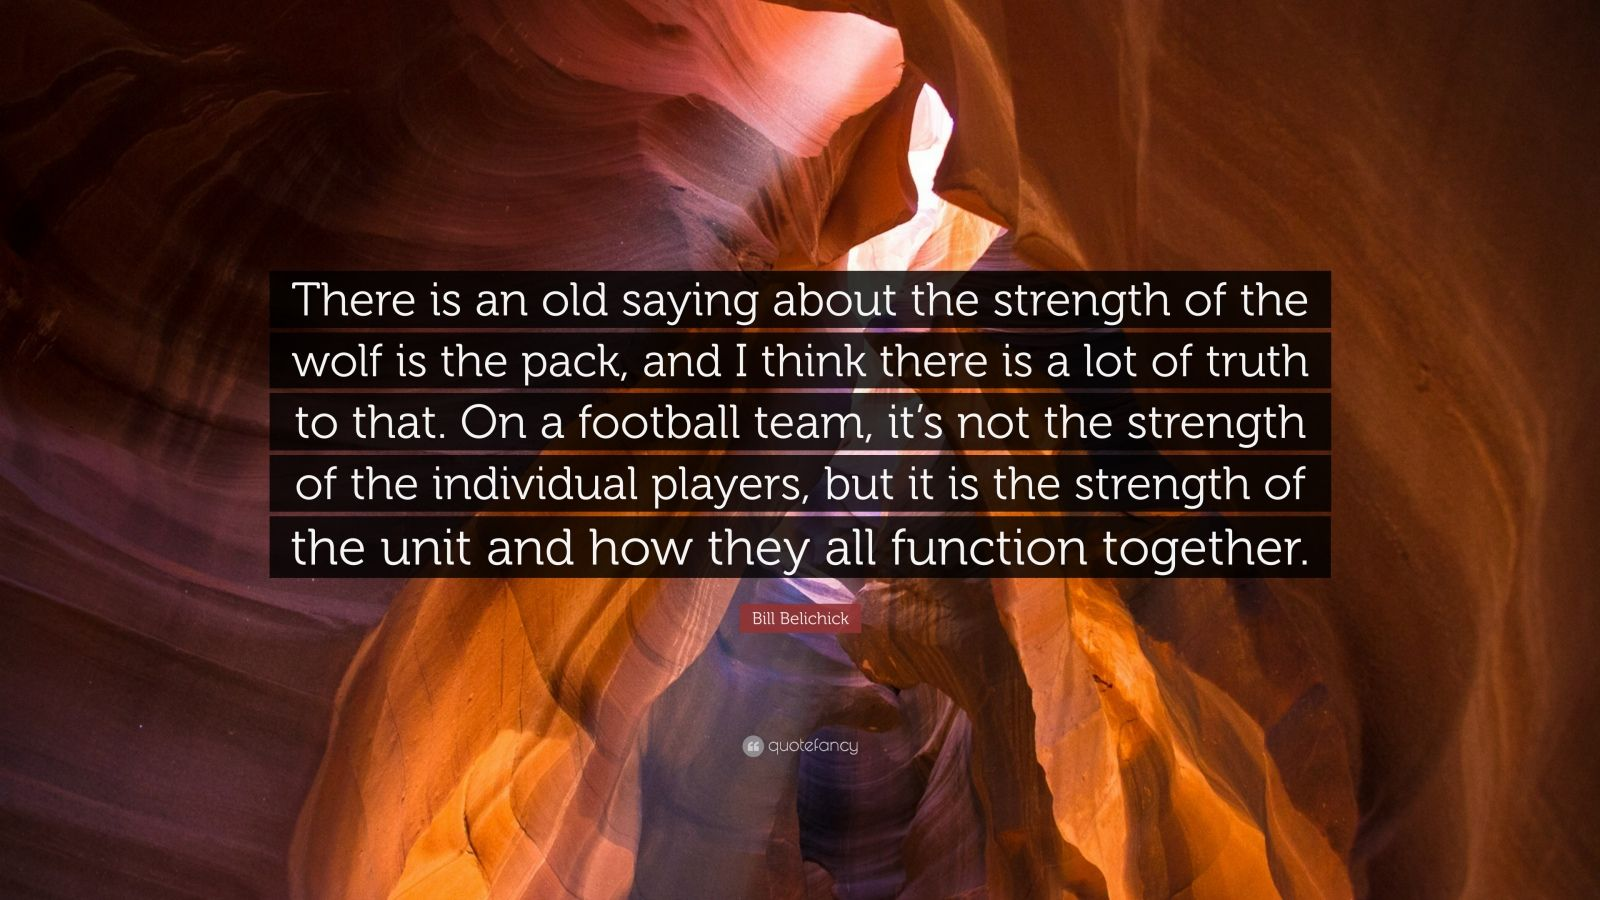 """Bill Belichick Quote: """"There is an old saying about the strength of the wolf is the pack, and I think there is a lot of truth to that. On a football team, it's not the strength of the individual players, but it is the strength of the unit and how they all function together."""""""